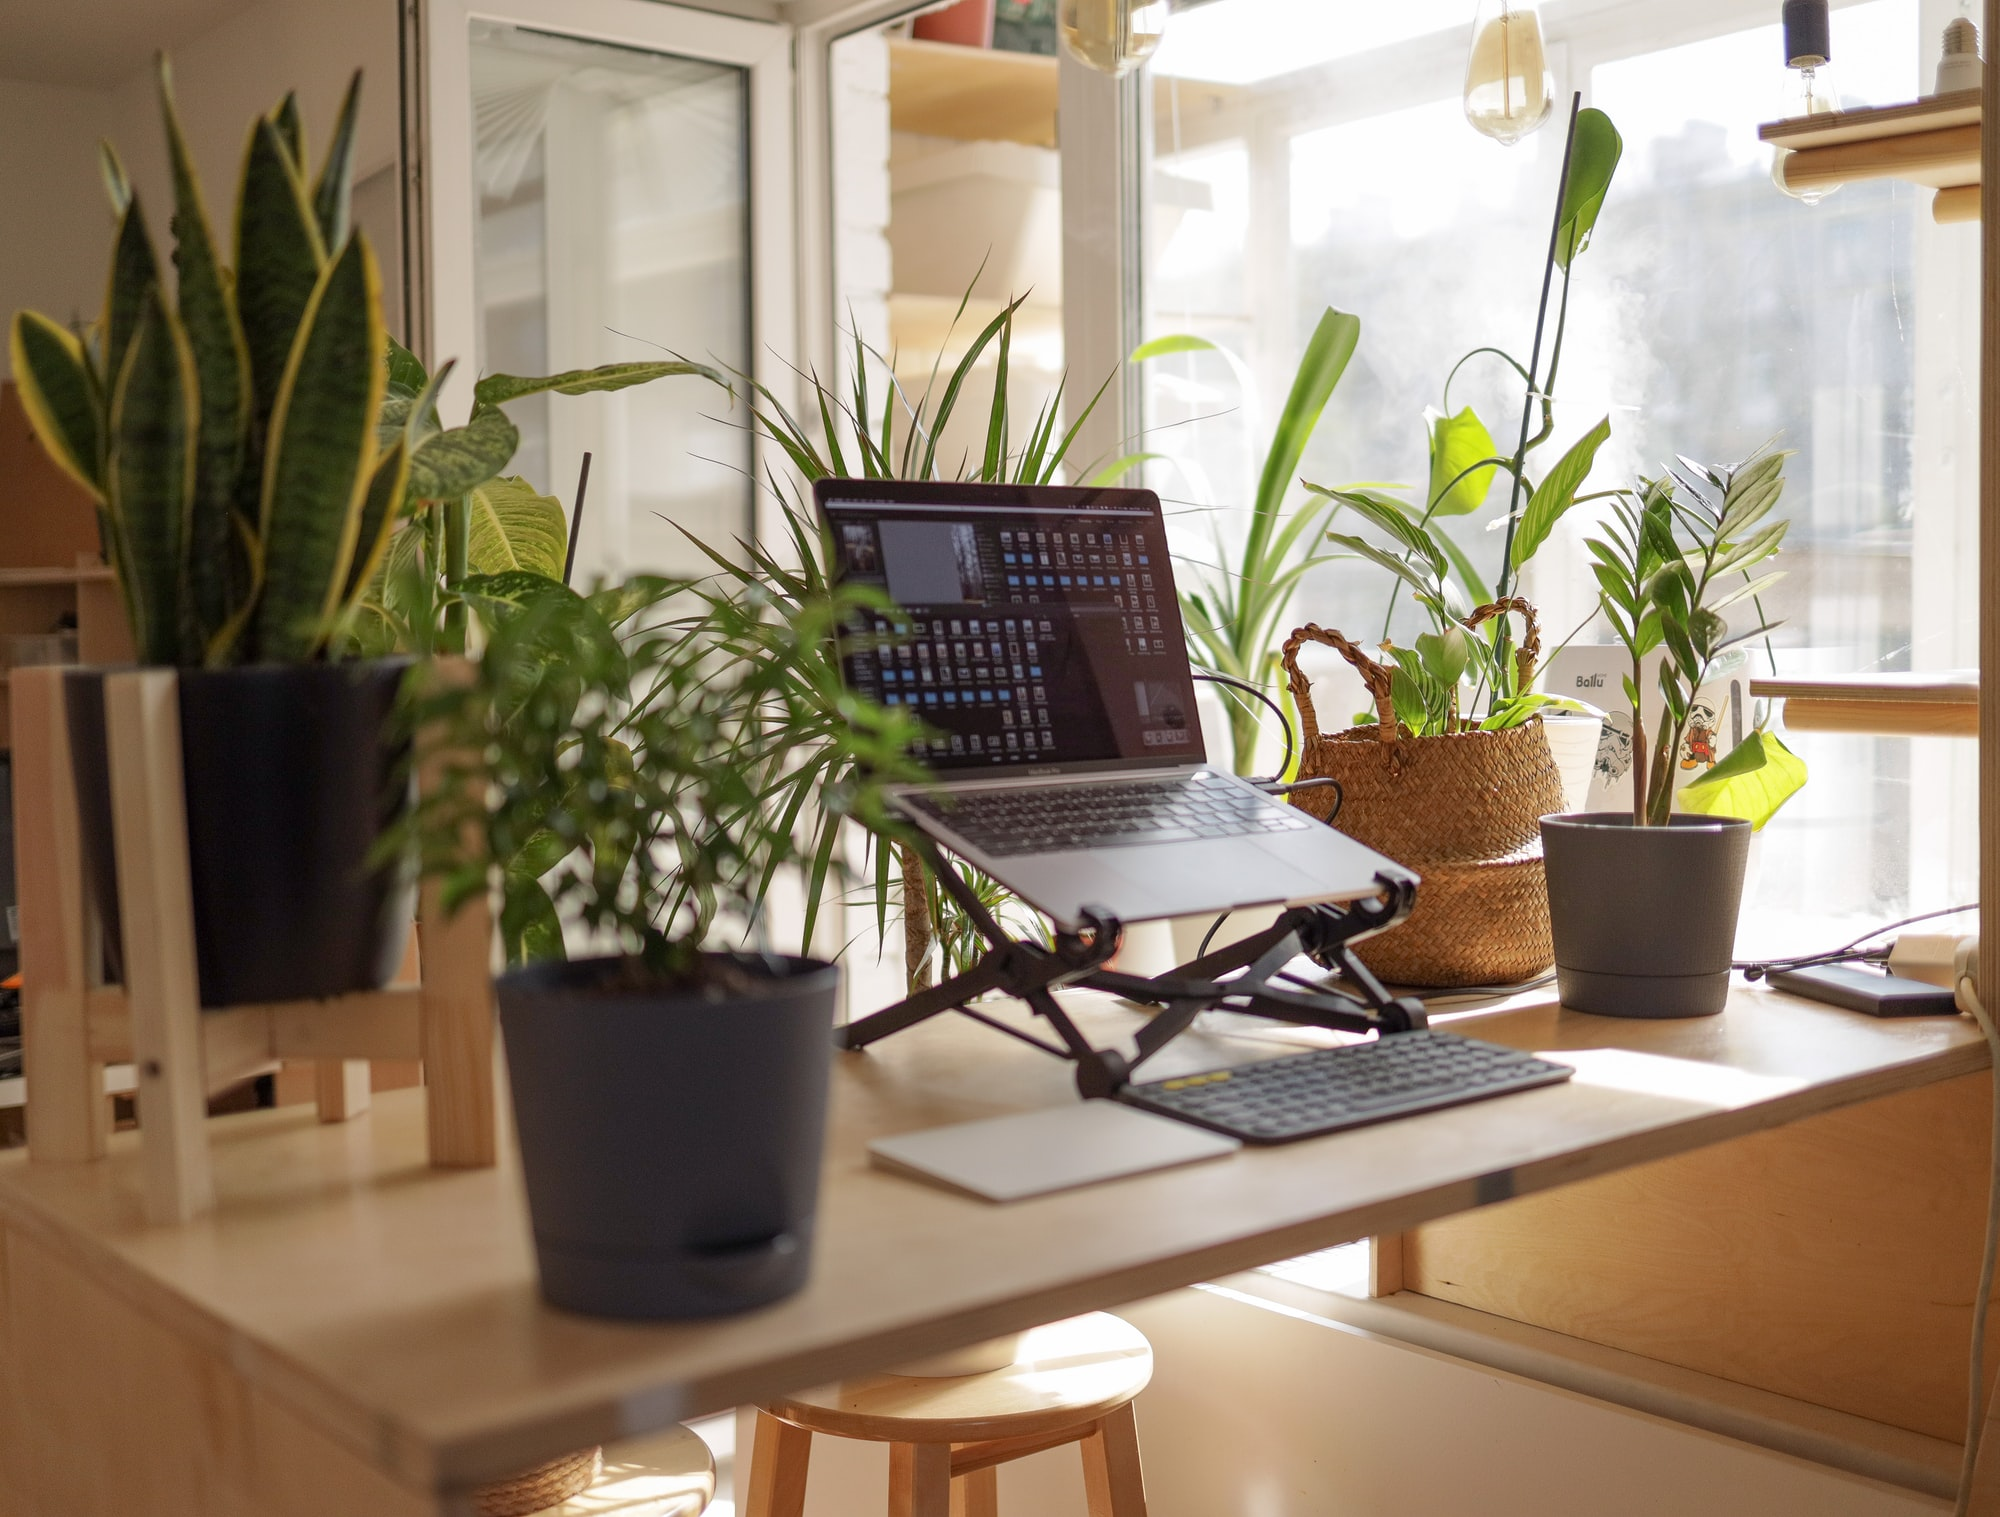 Remote Jobs: 3 Trends To Watch, 5 Ways To Balance